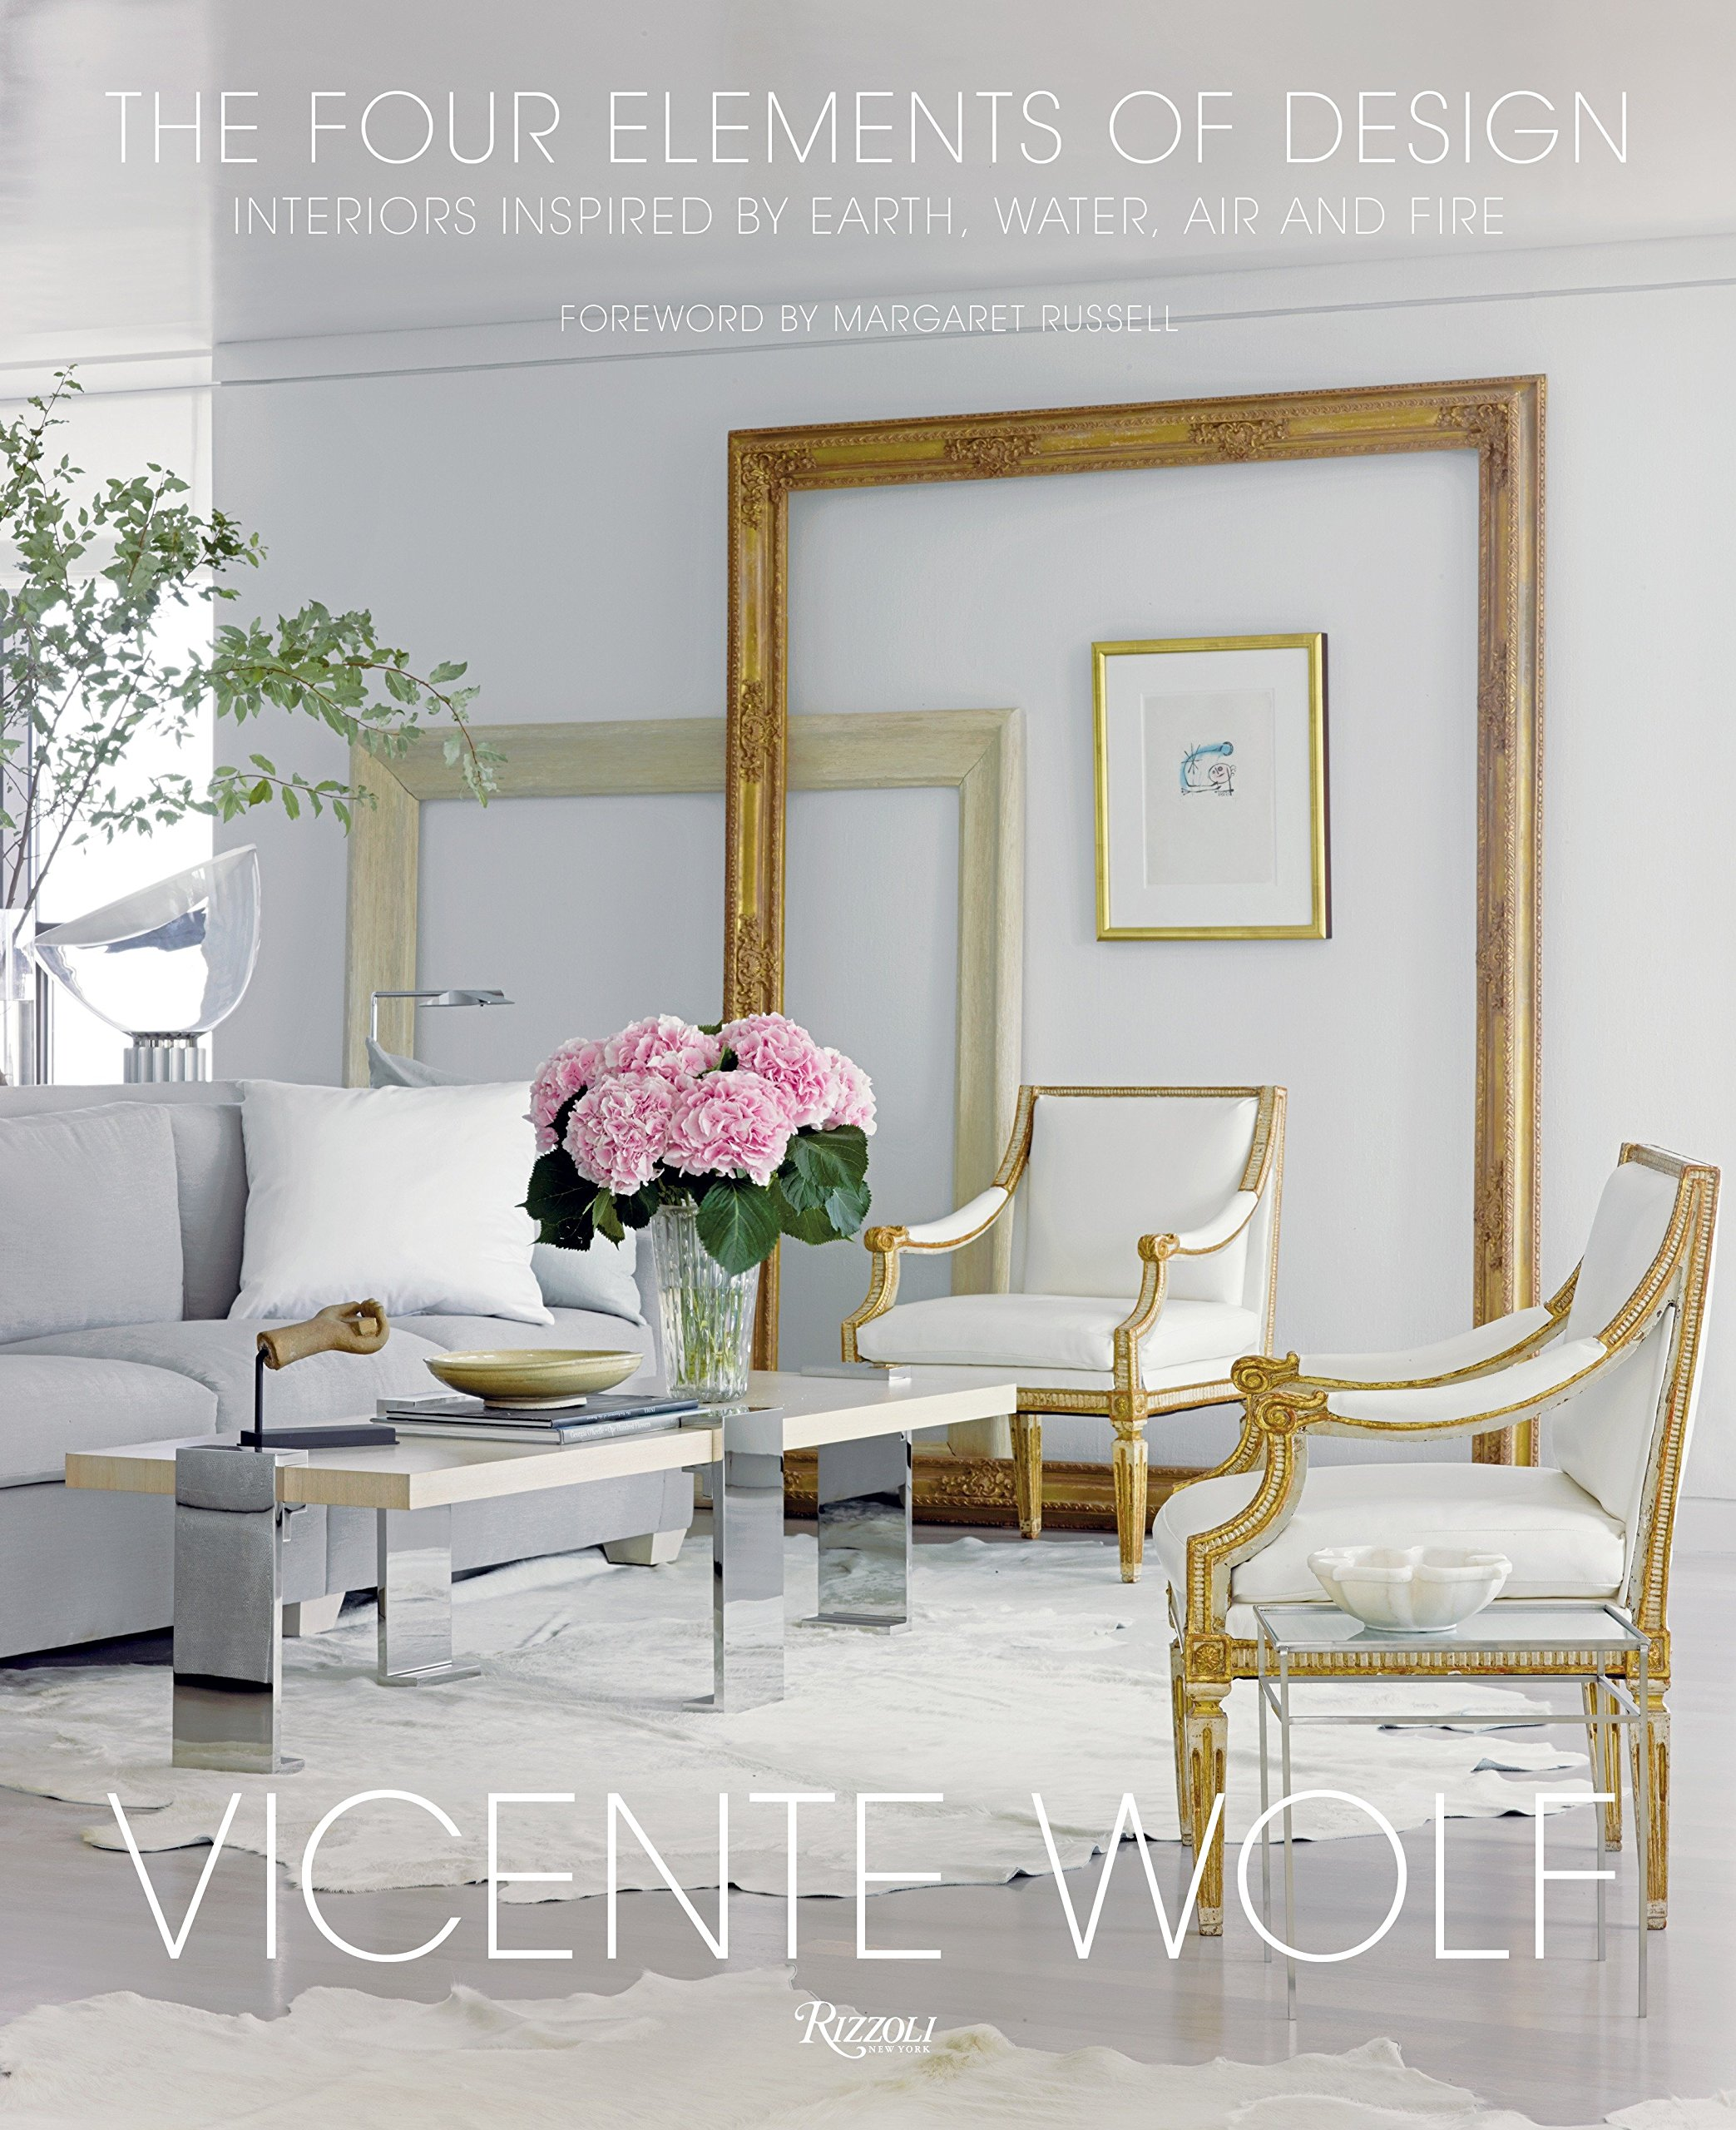 The Four Elements Of Design Interiors Inspired By Earth Water Air And Fire Wolf Vicente Russell Margaret 9780847848157 Amazon Com Books